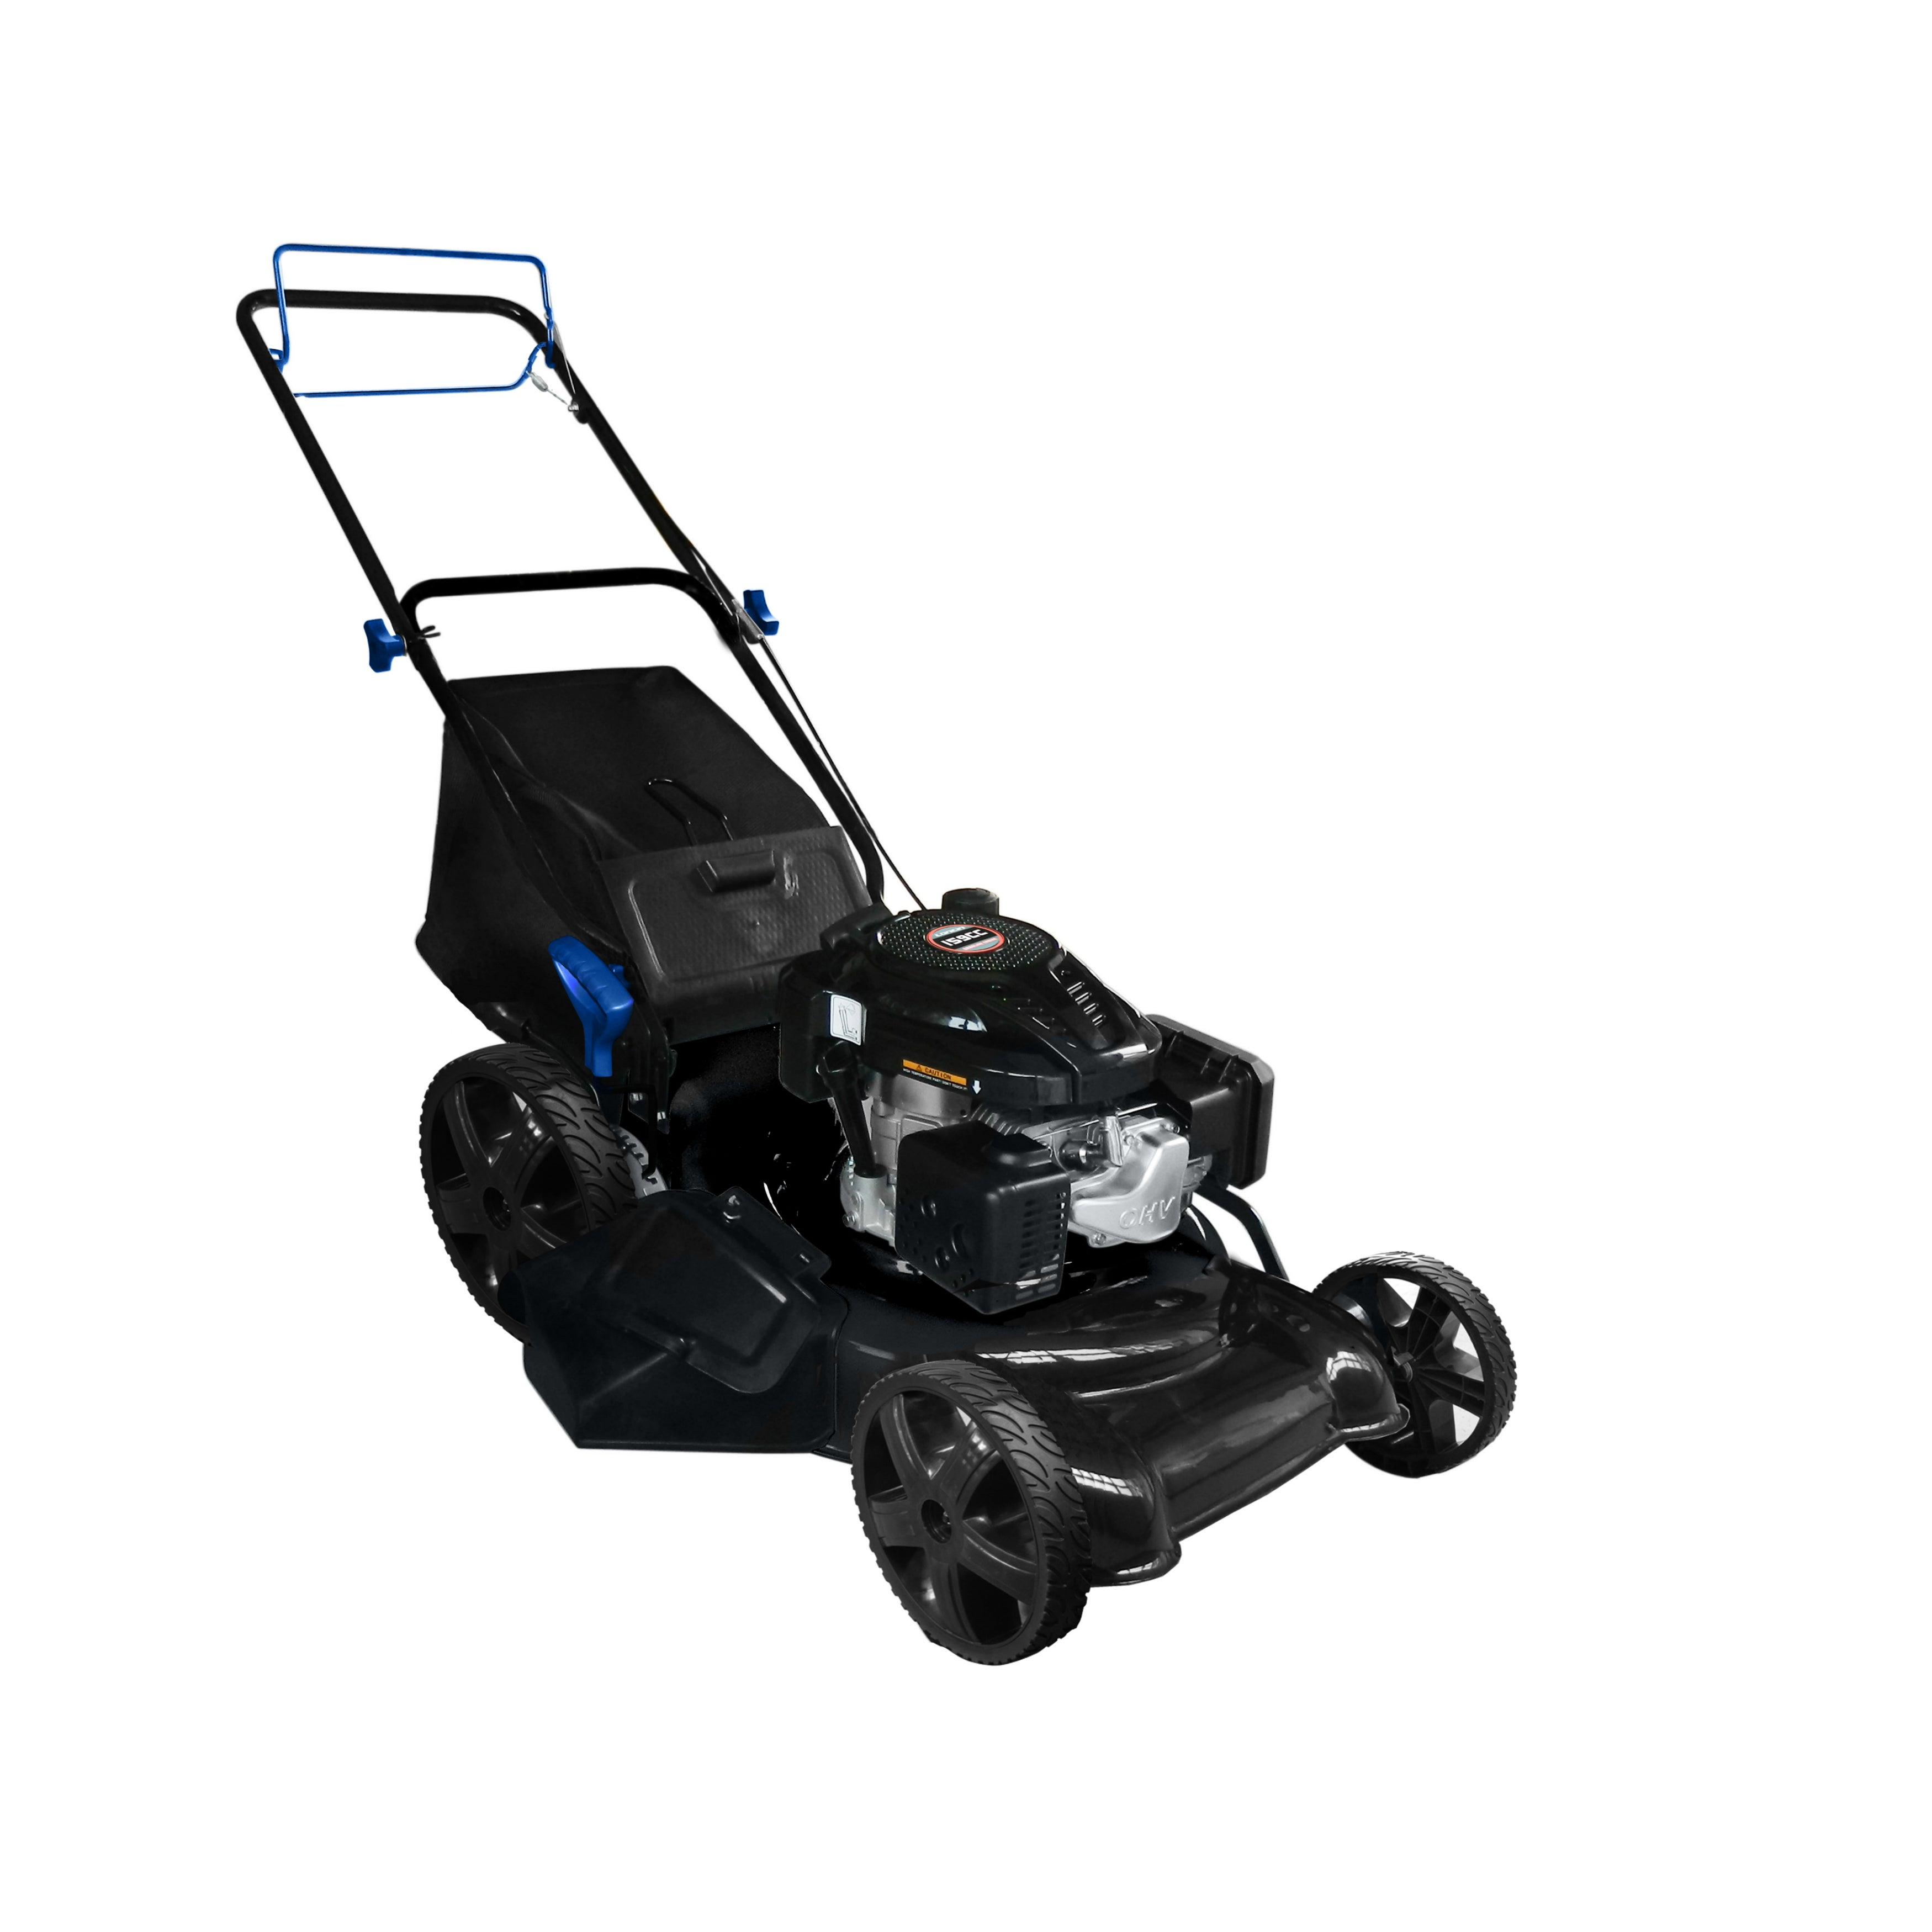 Aavix AGT1321 22-inch 159CC Self Propelled 3-In-One Gas L...